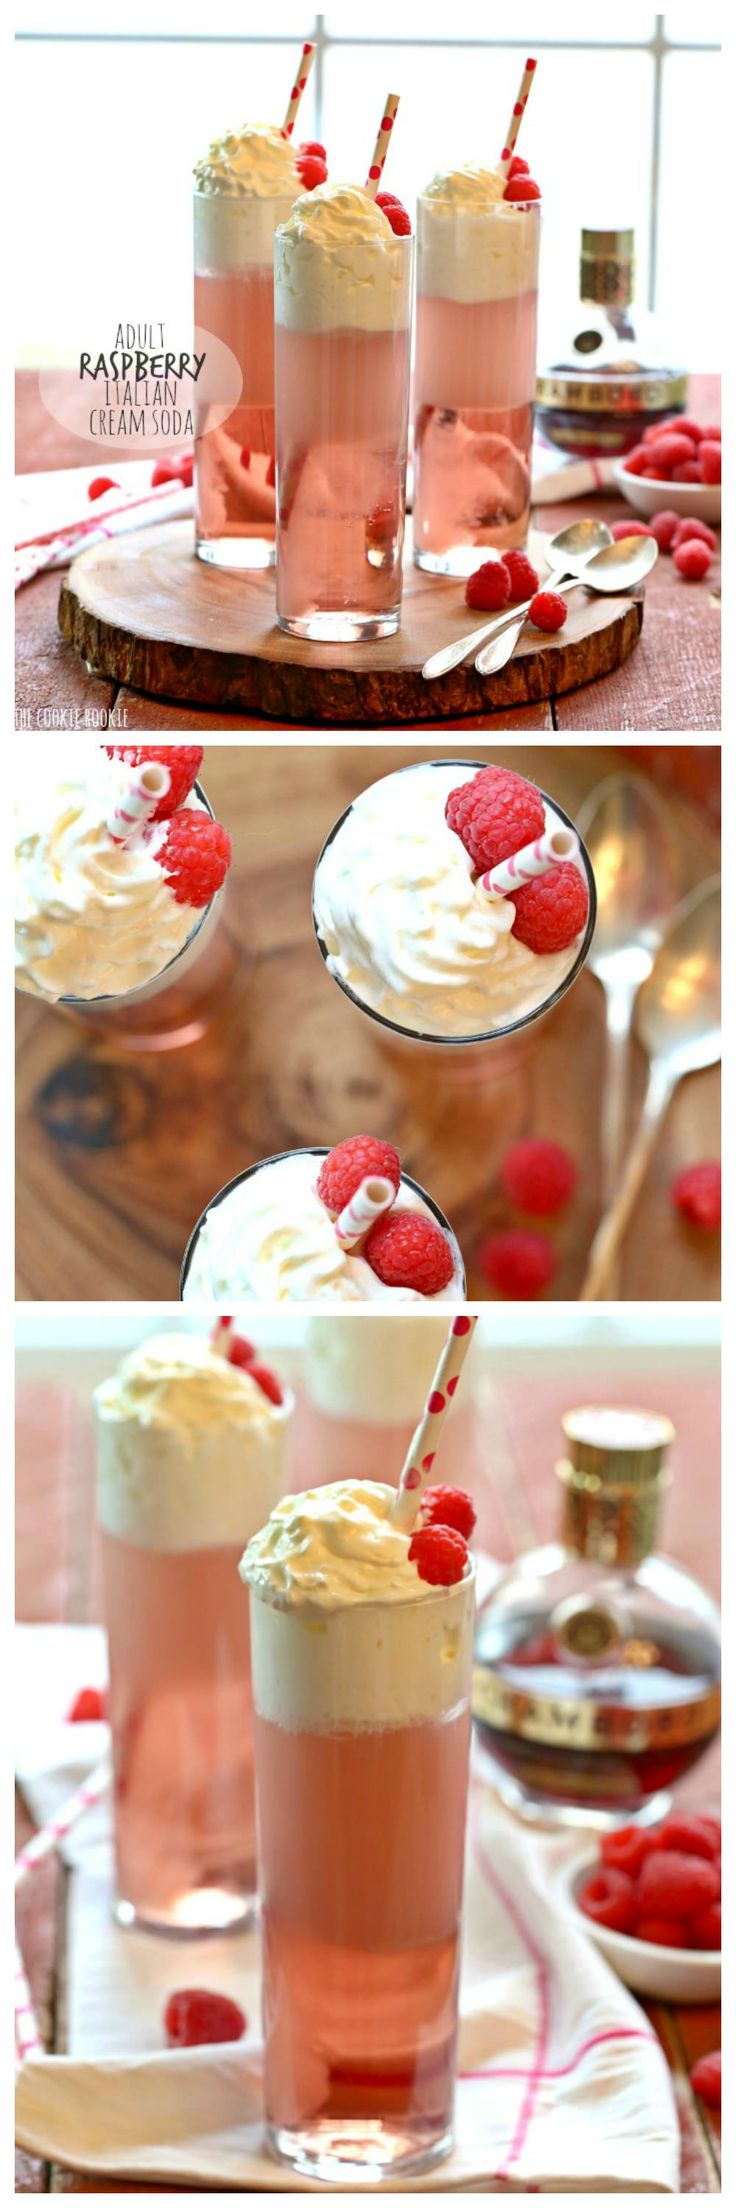 Adult Raspberry Italian Cream Sodas made with Chambord! So fun and delicious, perfect cocktail for Valentine's Day! | The Cookie Rookie